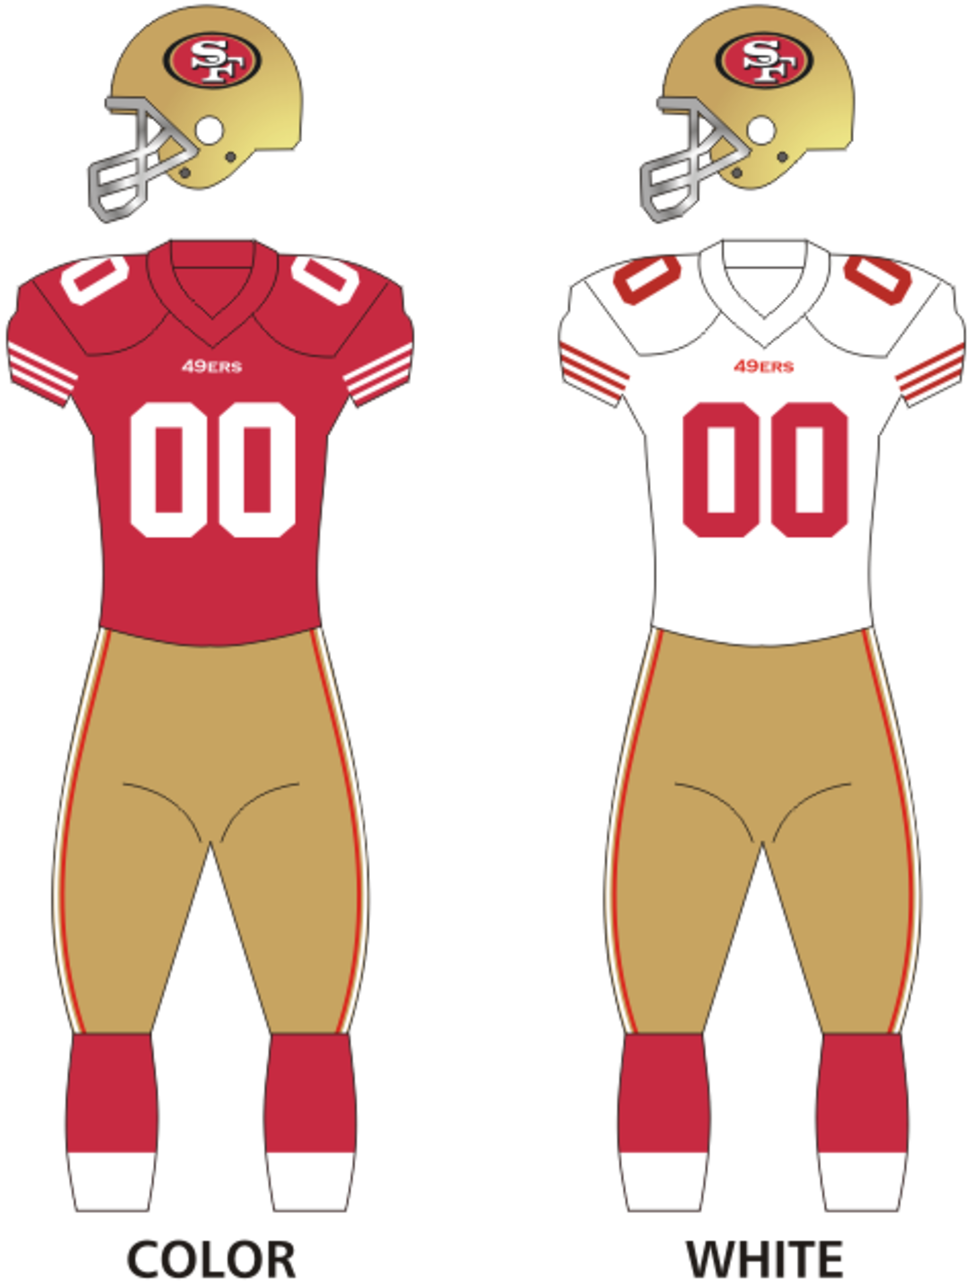 49ers uniforms12